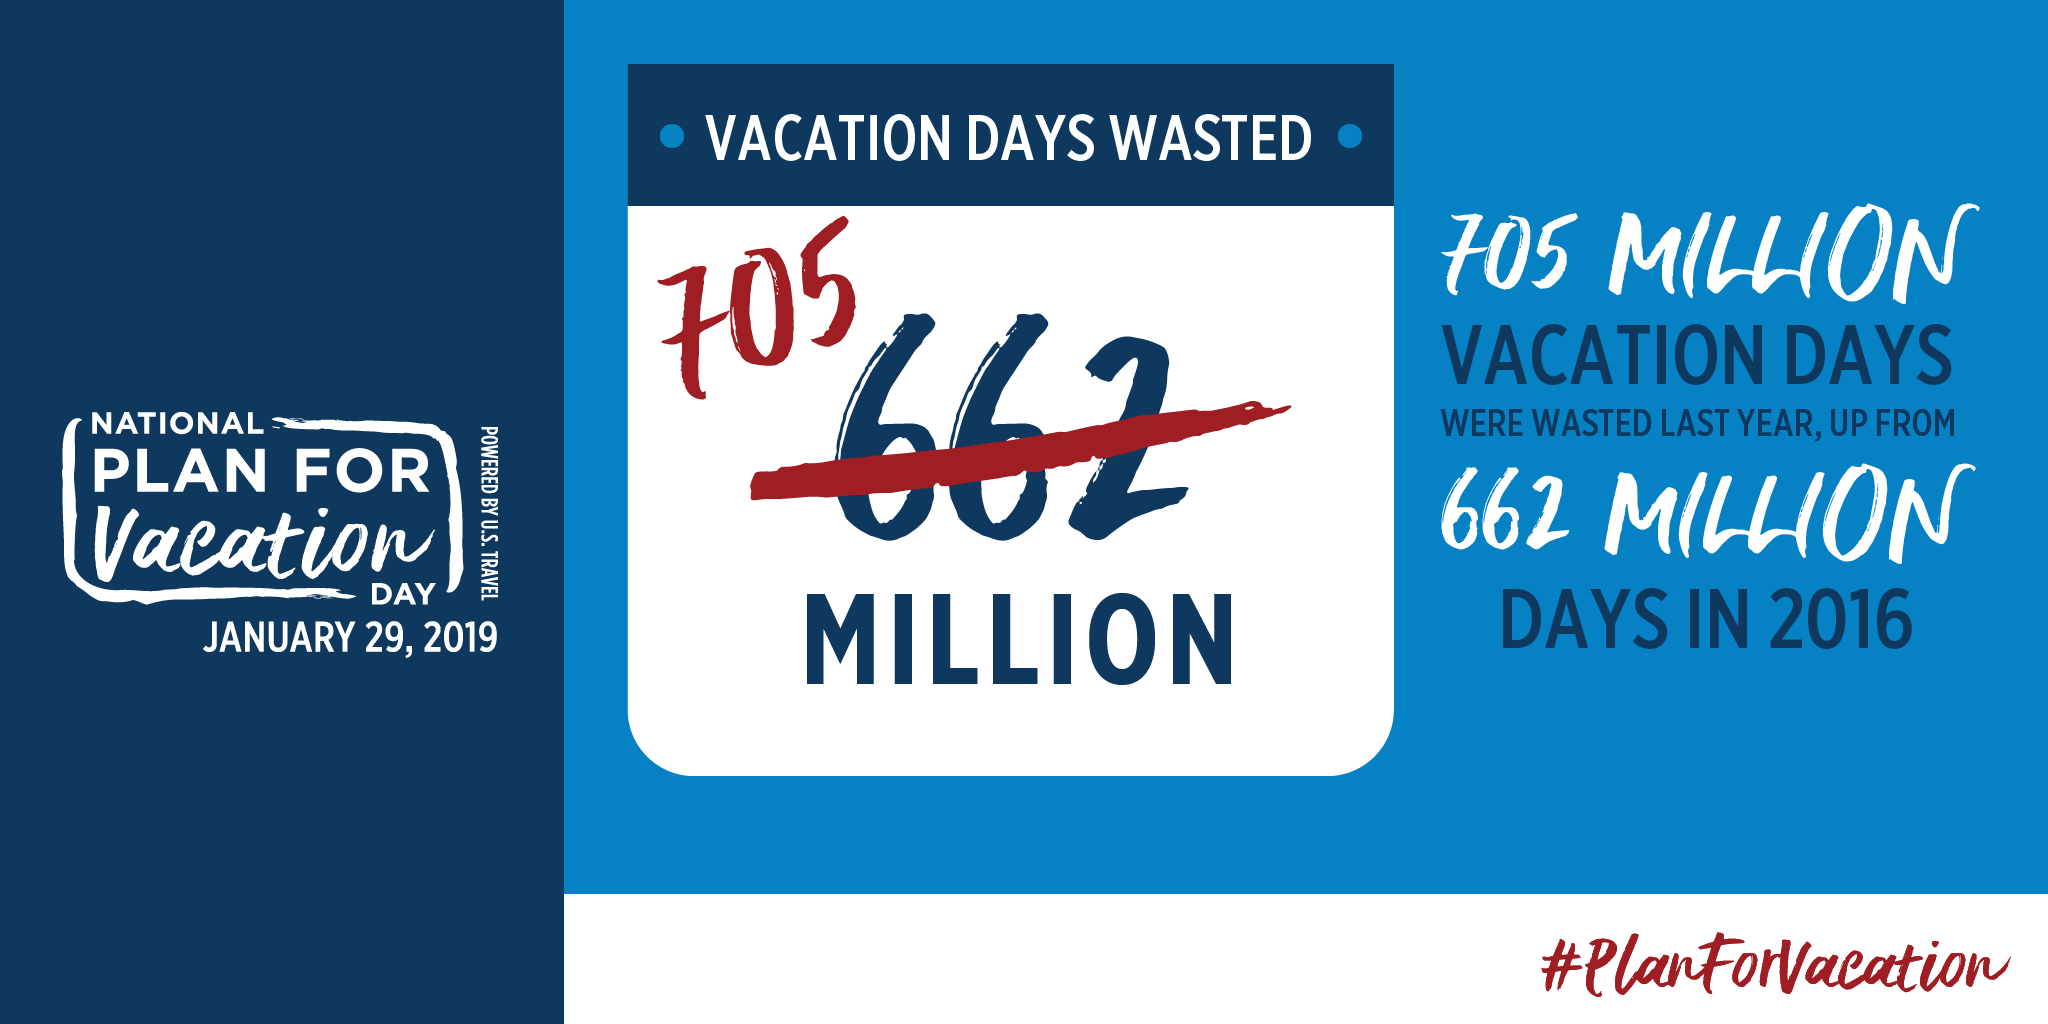 Vacation-Days-Wasted-Plan-For-Vacation-2019.png